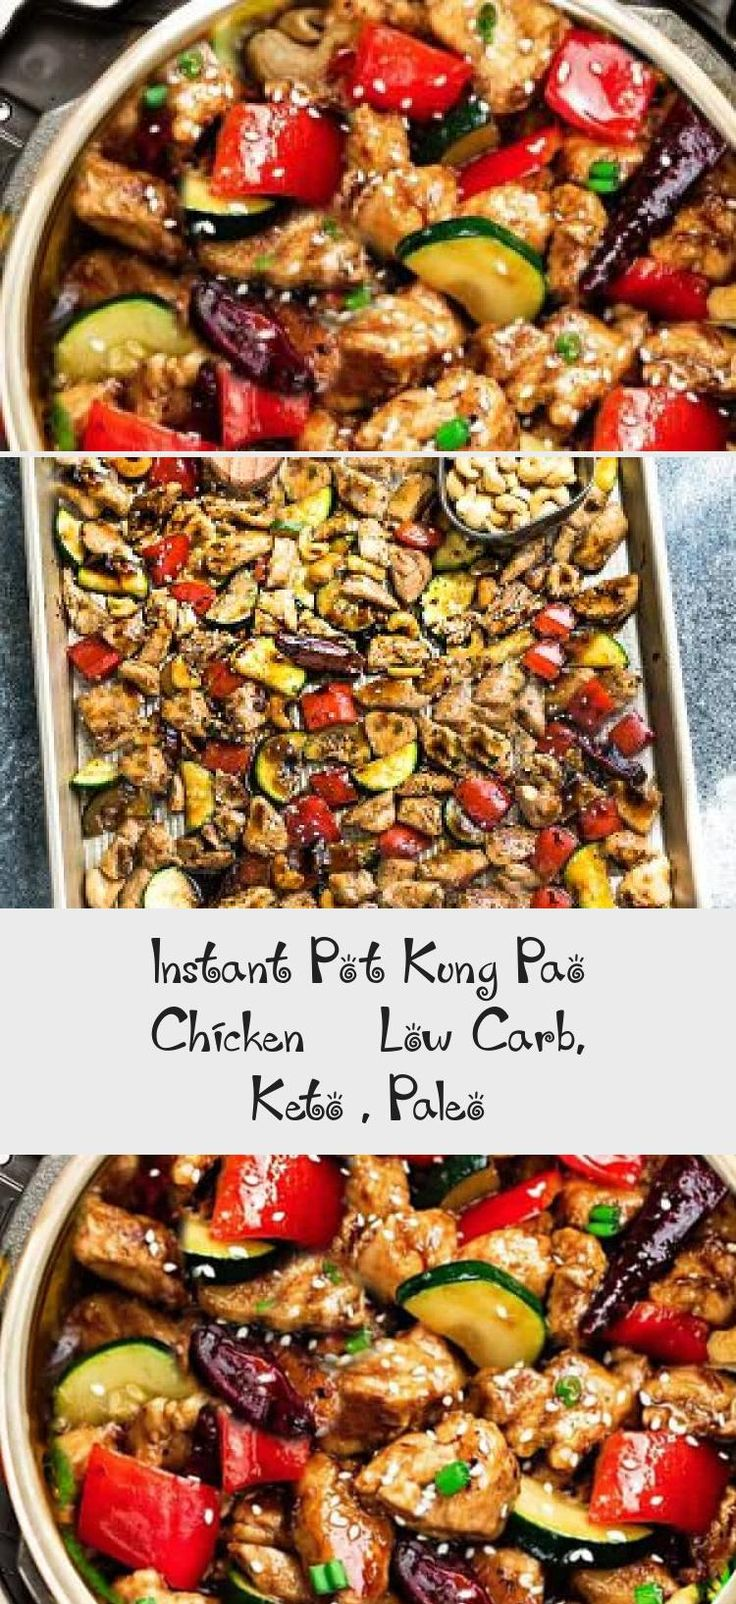 Instant pot kung pao chicken low carb keto paleo